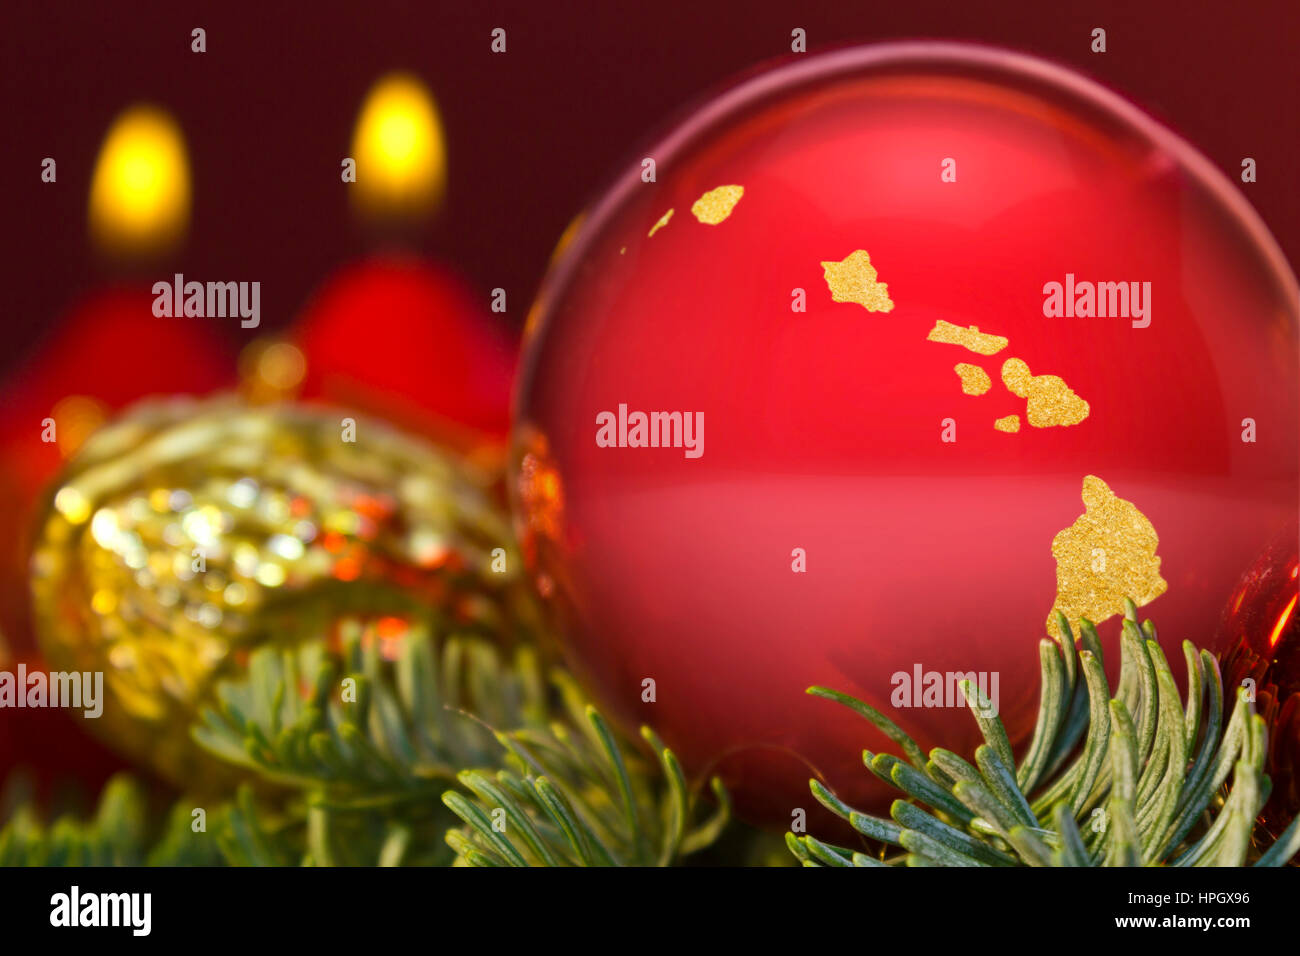 Hawaiian Merry Christmas.Christmas Decoration Hawaiian Merry Christmas Stock Photos